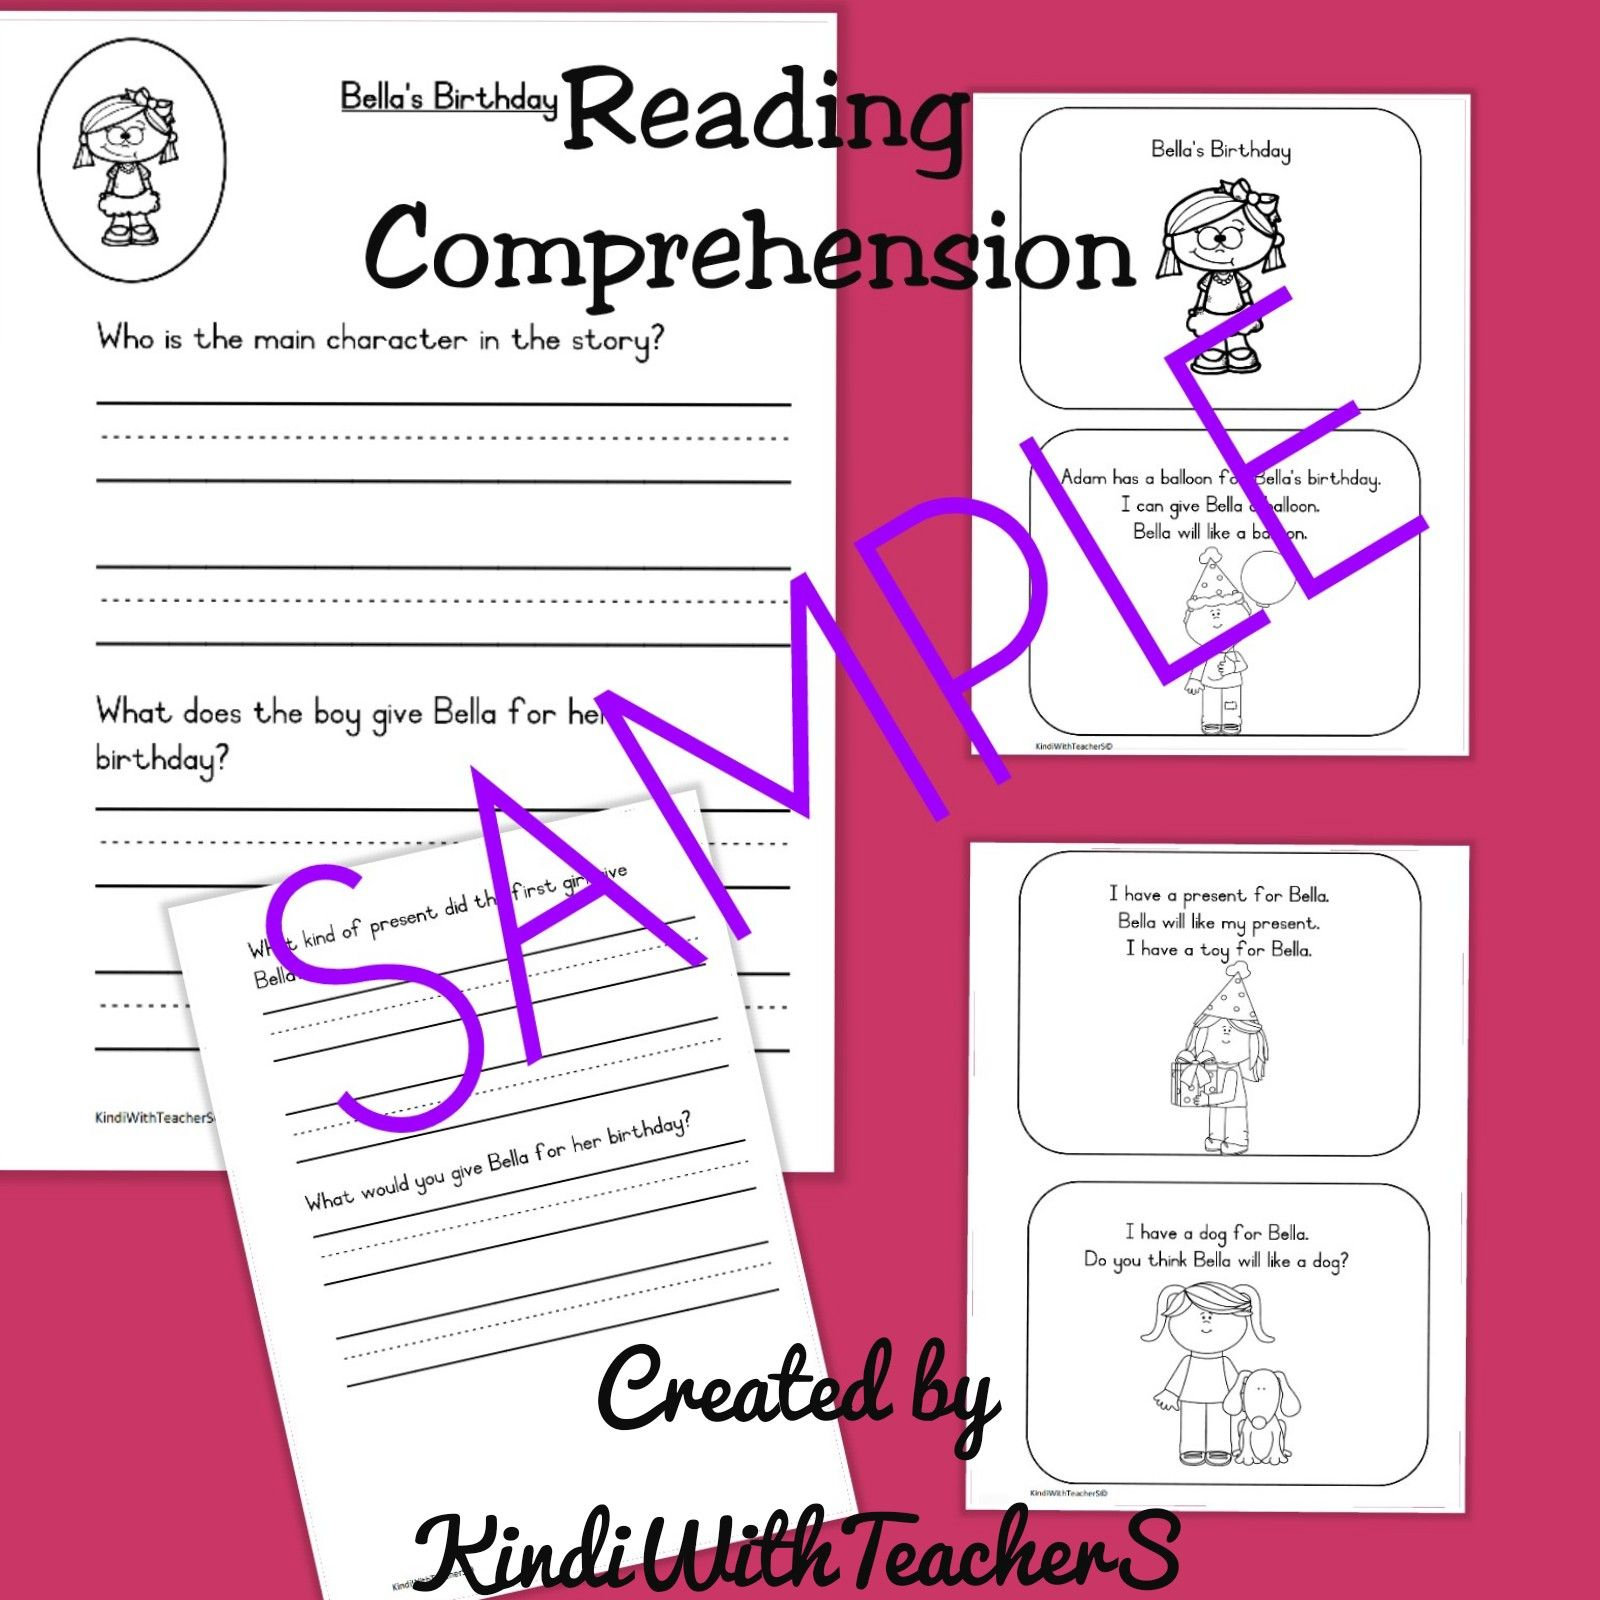 This Reading Comprehension Packet Is Designed To Build